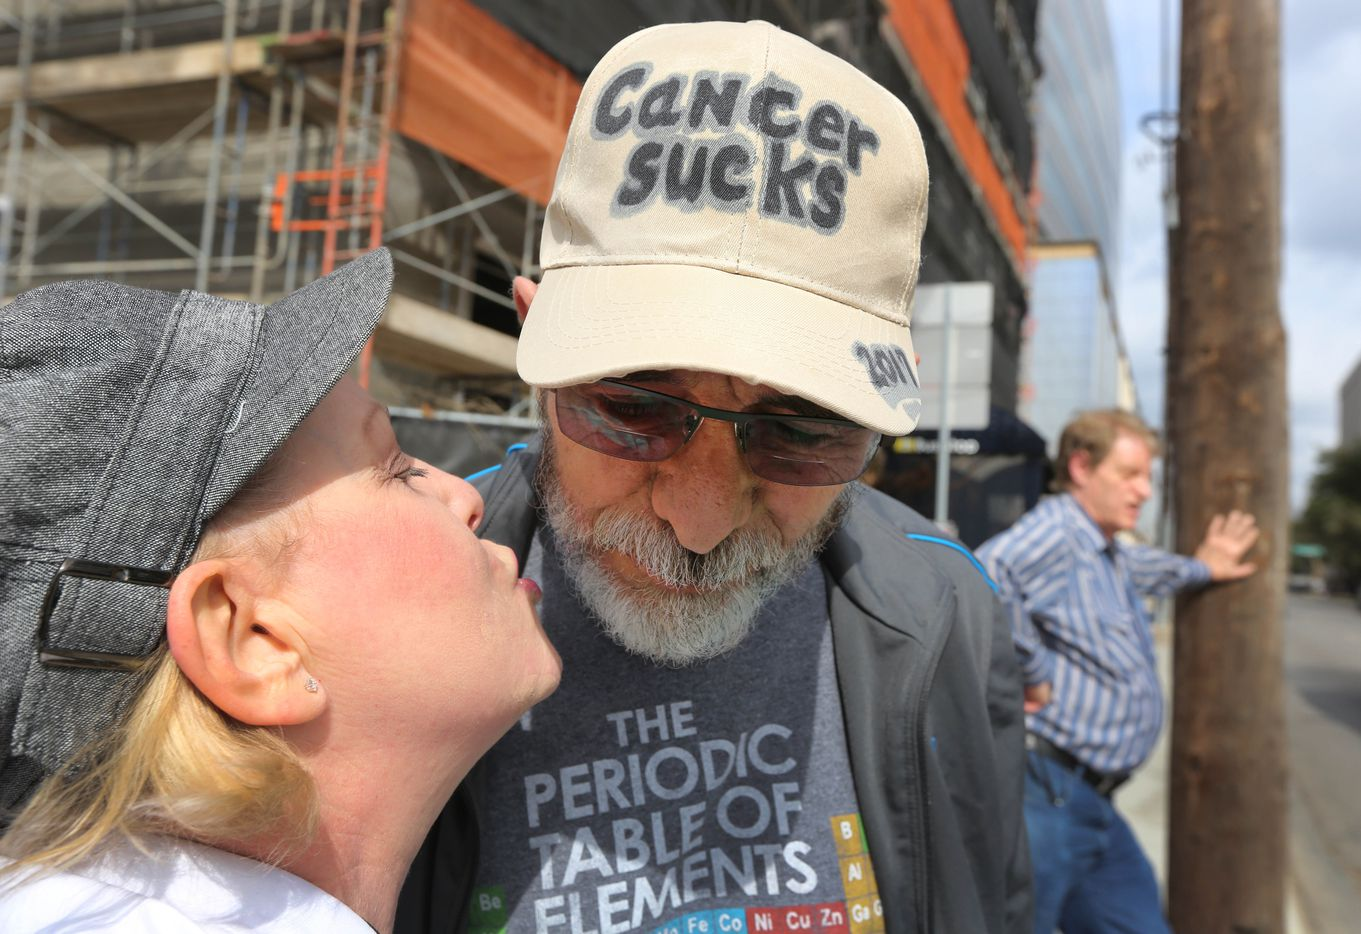 Jeffrey Weiss got a kiss from wife Marni during a trip to Baylor University Medical Center in Dallas in February 2017.